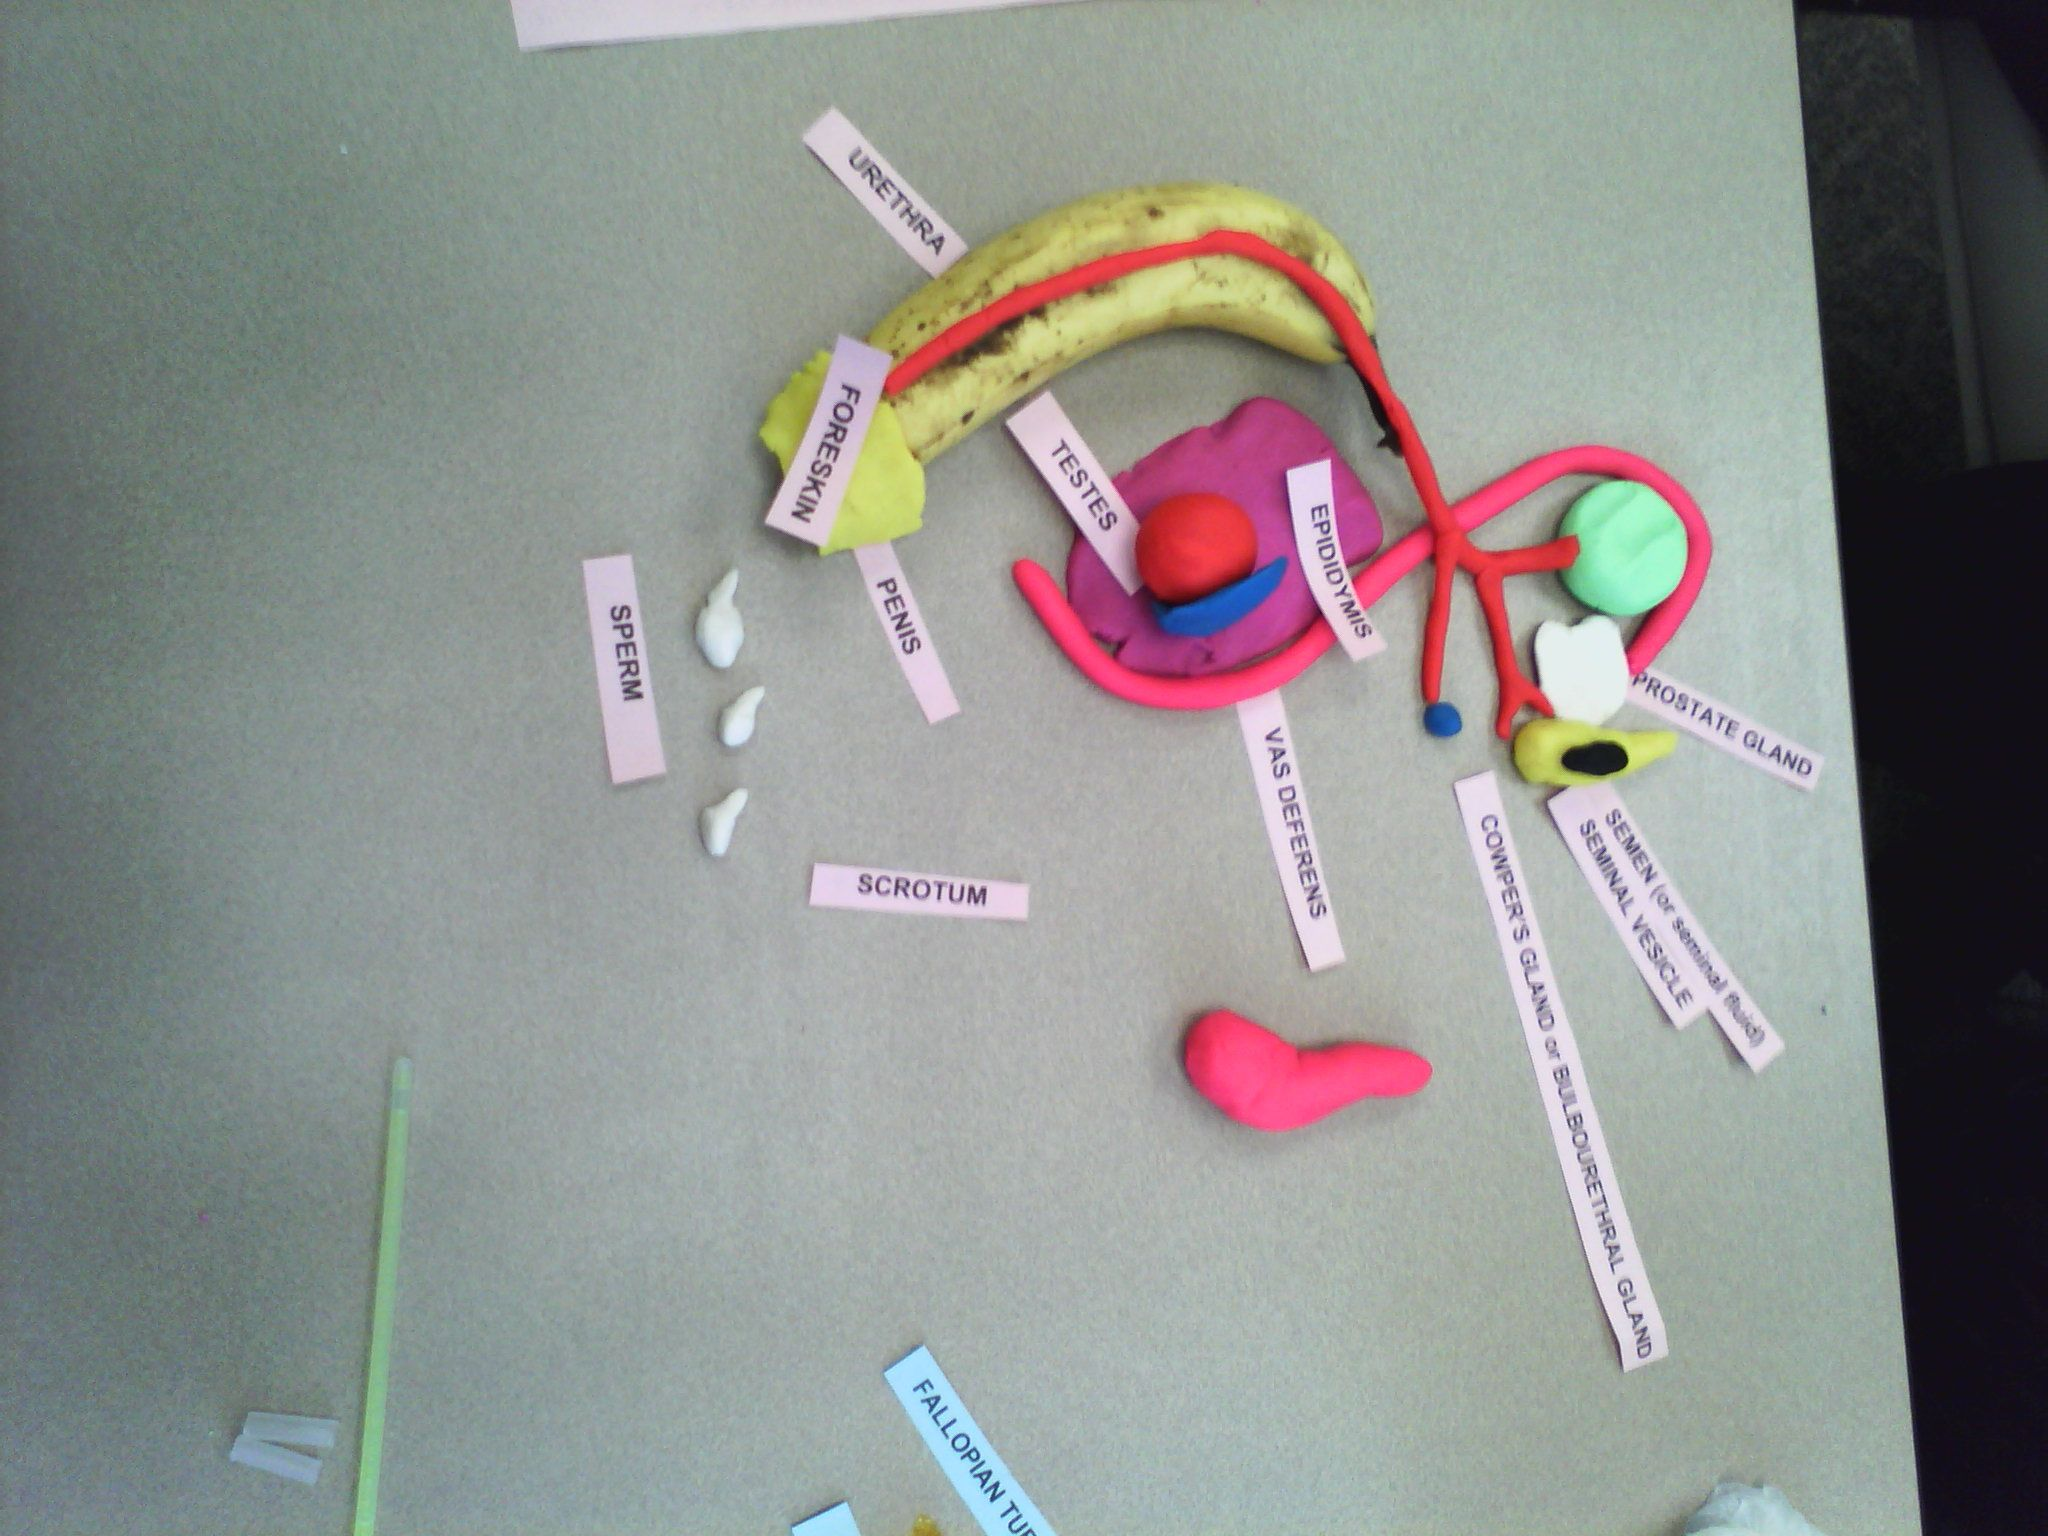 Male reproductive system constructed with items from home